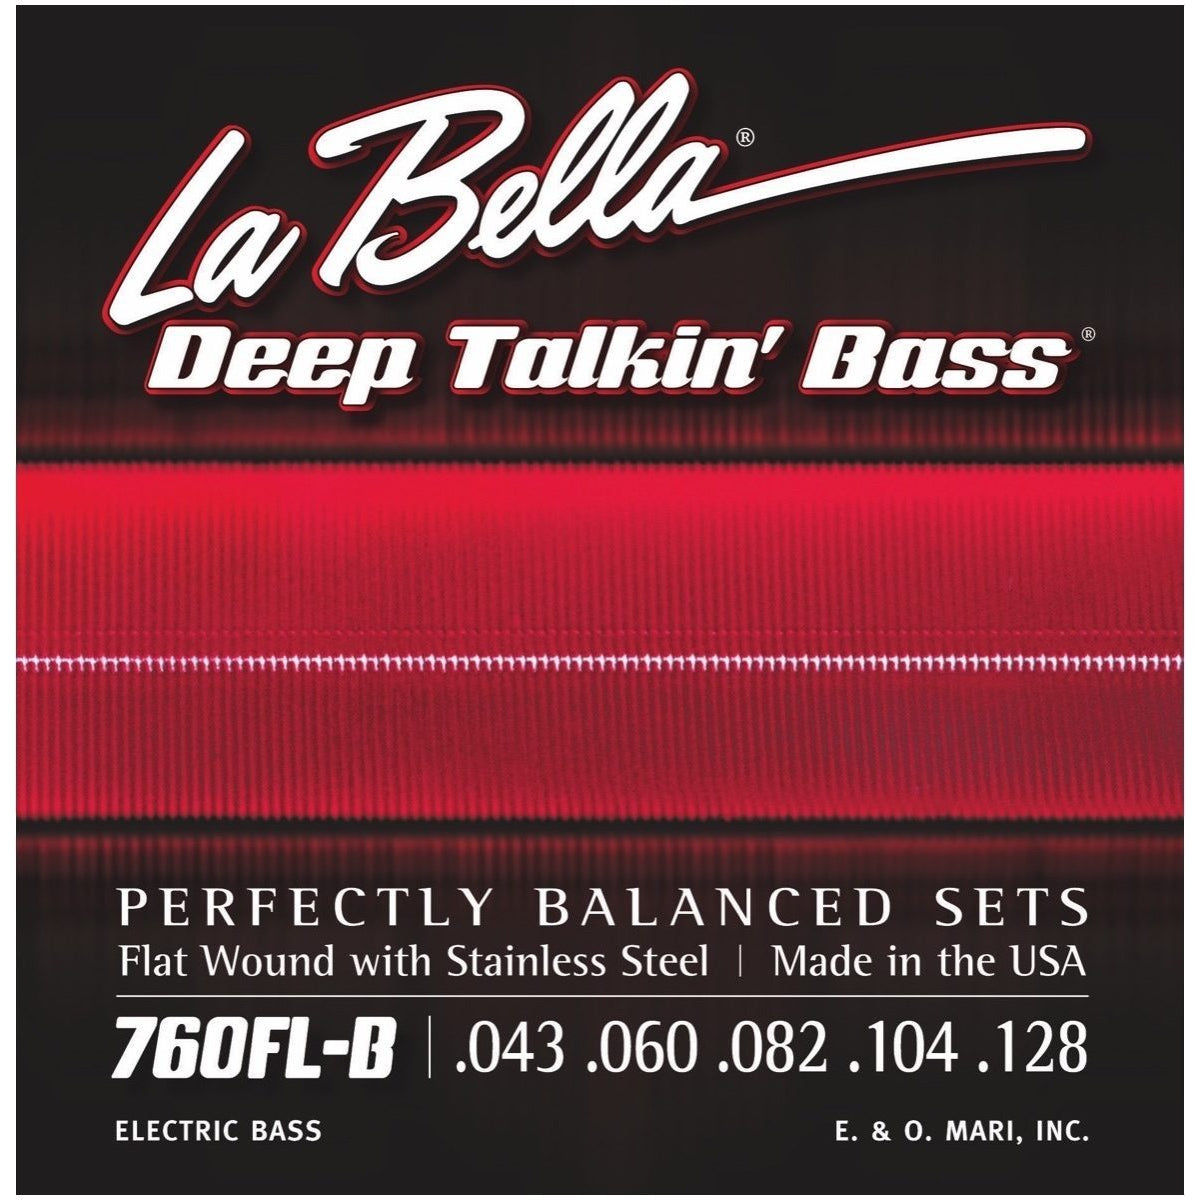 La Bella Deep Talkin Flatwound Stainless Steel 5-String Electric Bass Strings, 760FLB, 43-128, Light